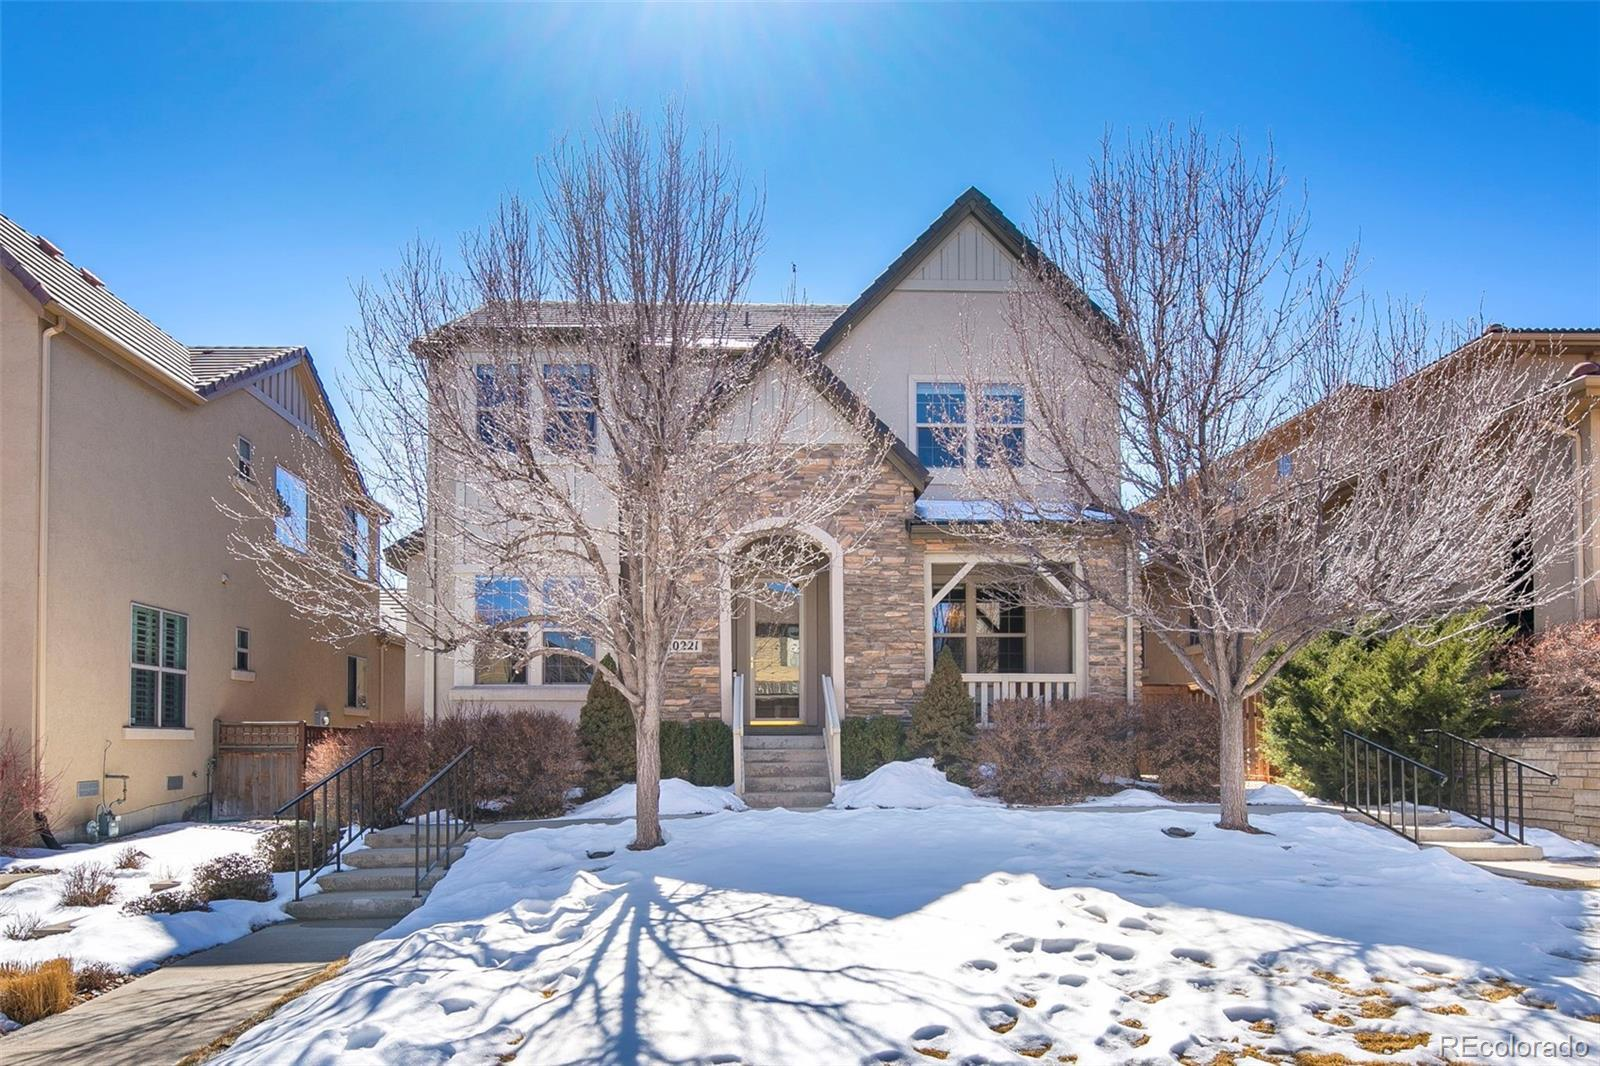 10221 Bluffmont Drive, Lone Tree, CO 80124 - #: 6351517